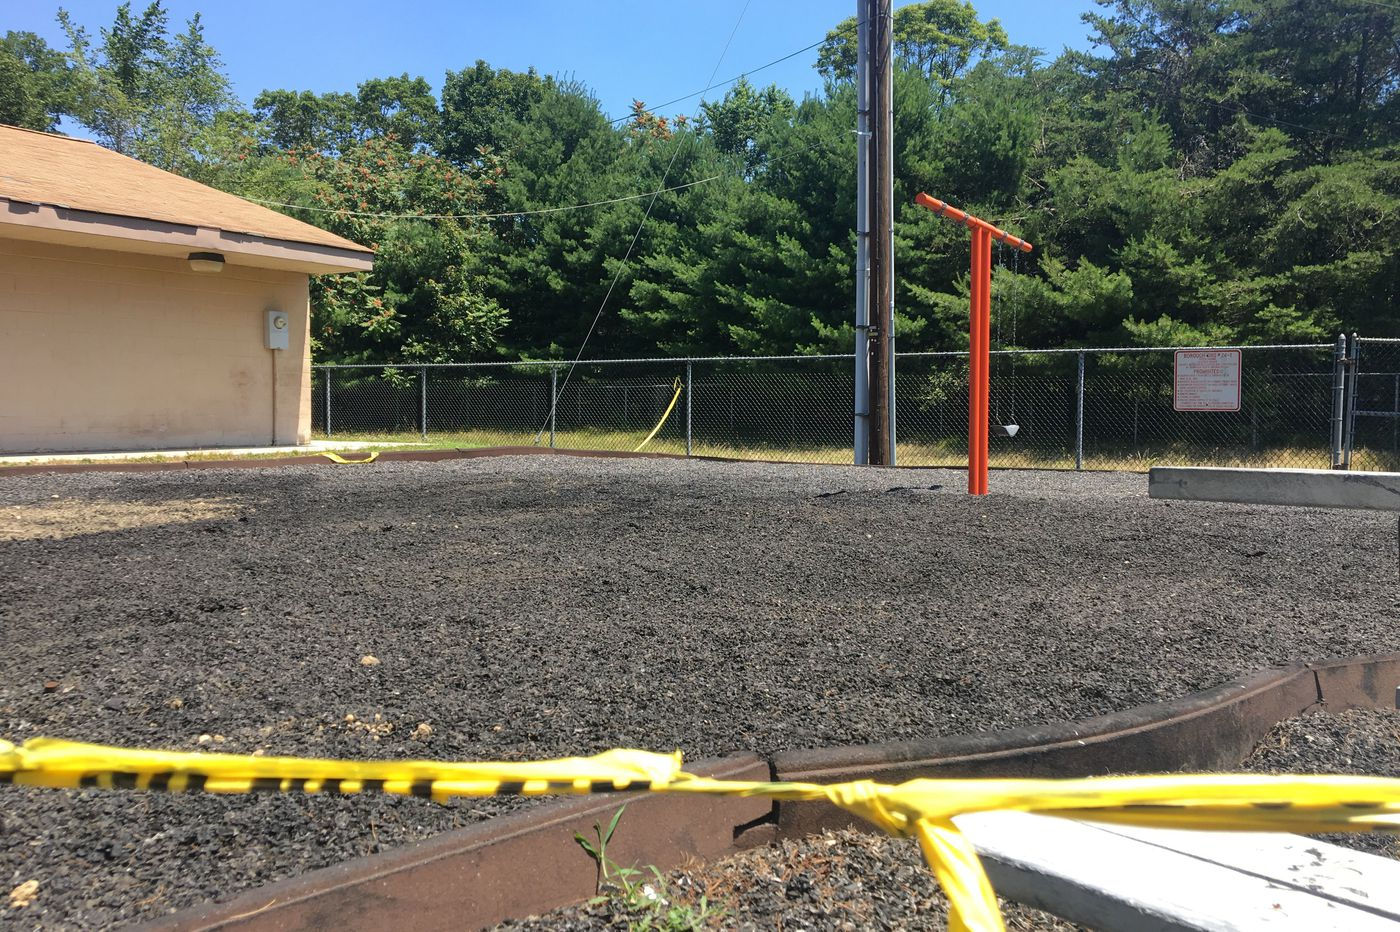 Police, fire marshal investigate 'suspicious fire' that destroyed Pine Hill playground